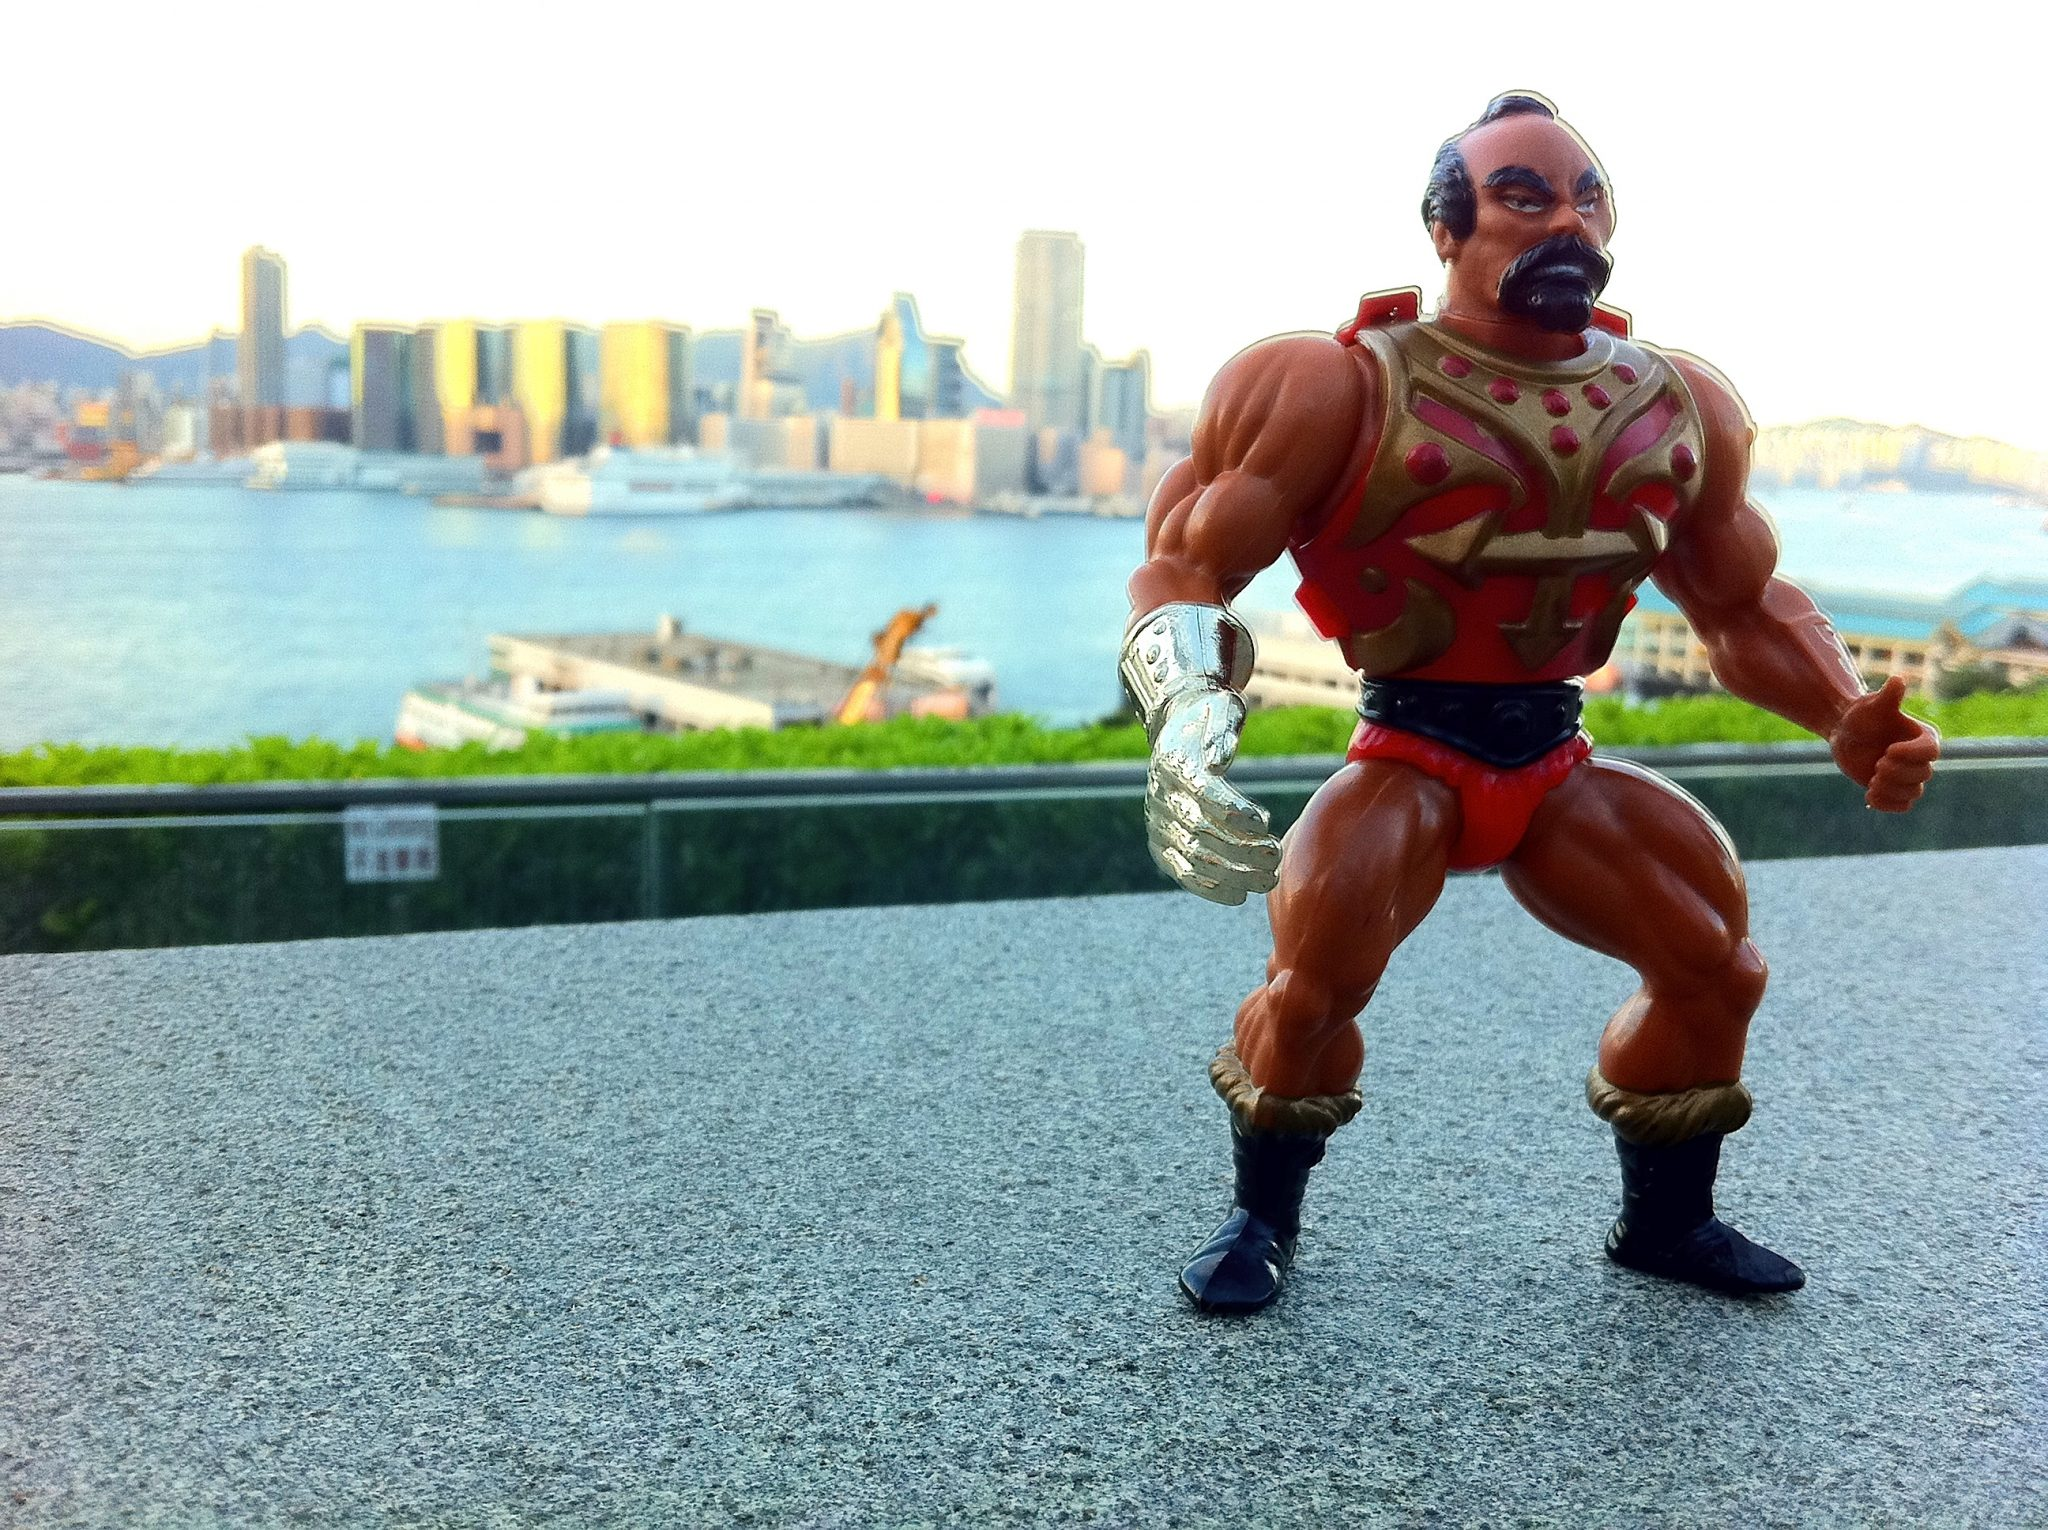 Action Figure In HK - How Tax Collectors Like The IRS Cleverly Rob You Of Your Money